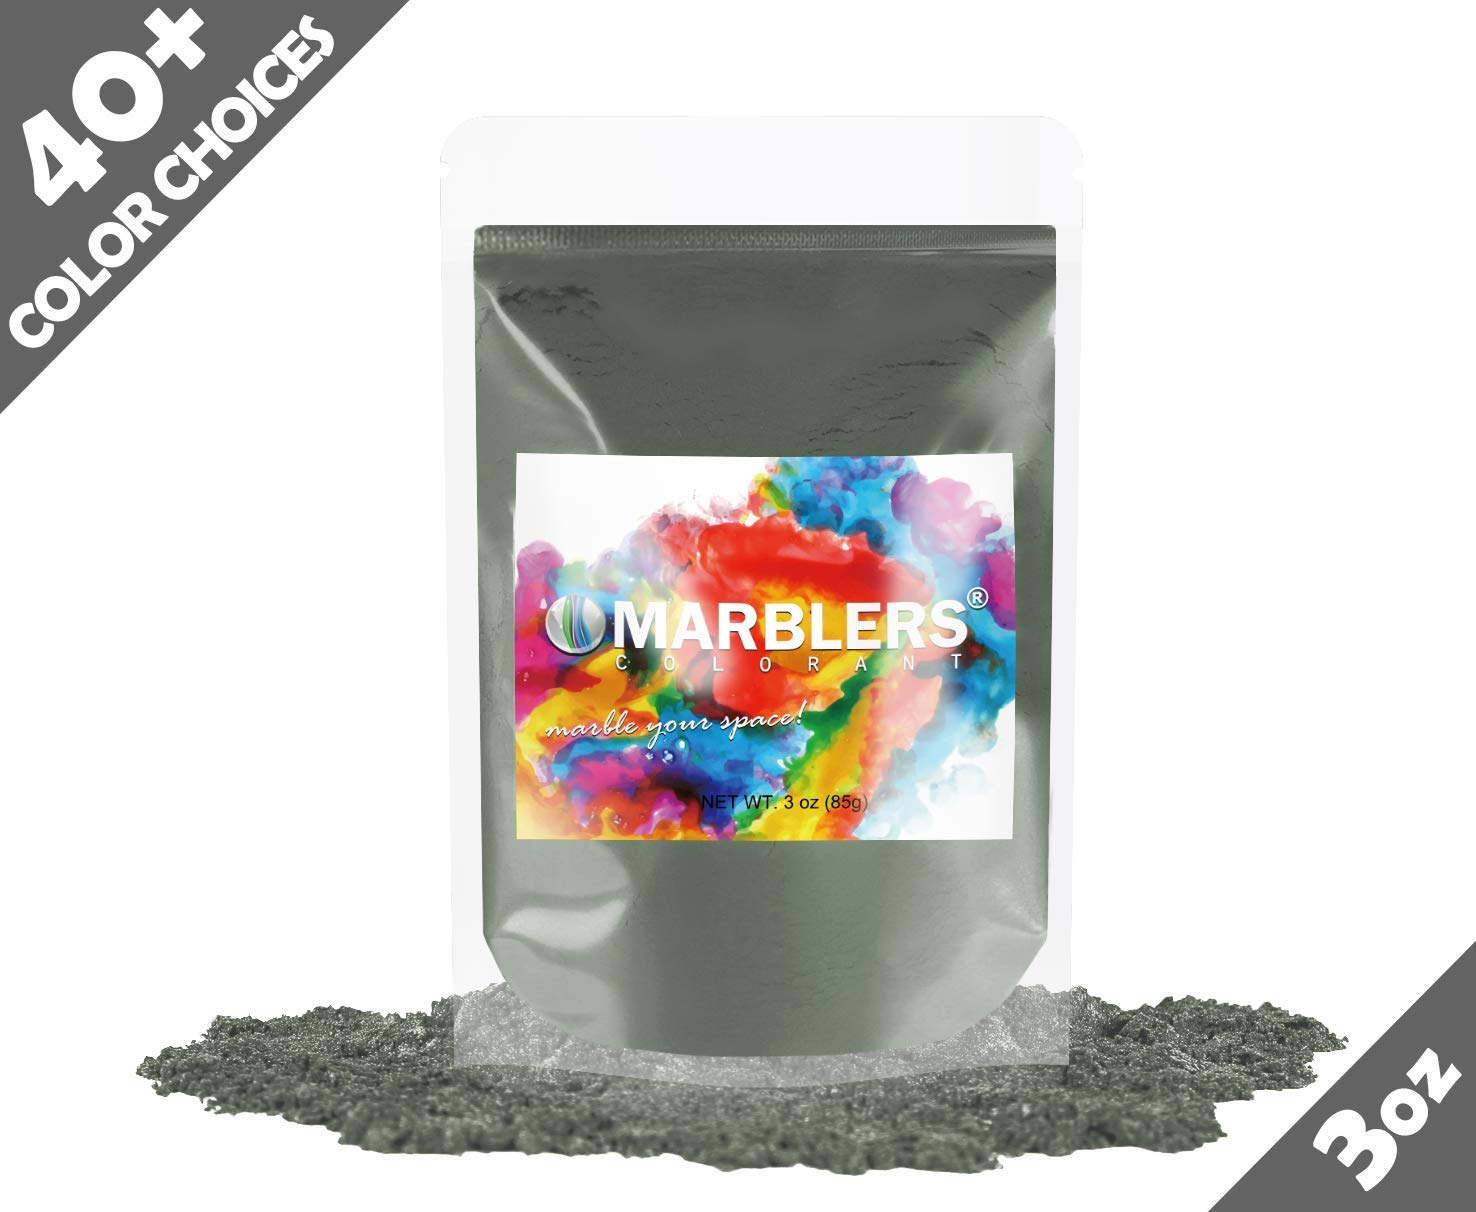 Marblers Powder Colorant 3oz (85g) [Khaki] | Pearlescent Pigment | Tint | Pure Mica Powder for Resin | Dye | Non-Toxic | Great for Epoxy, Soap, Nail Polish, Cosmetics and Bath Bombs